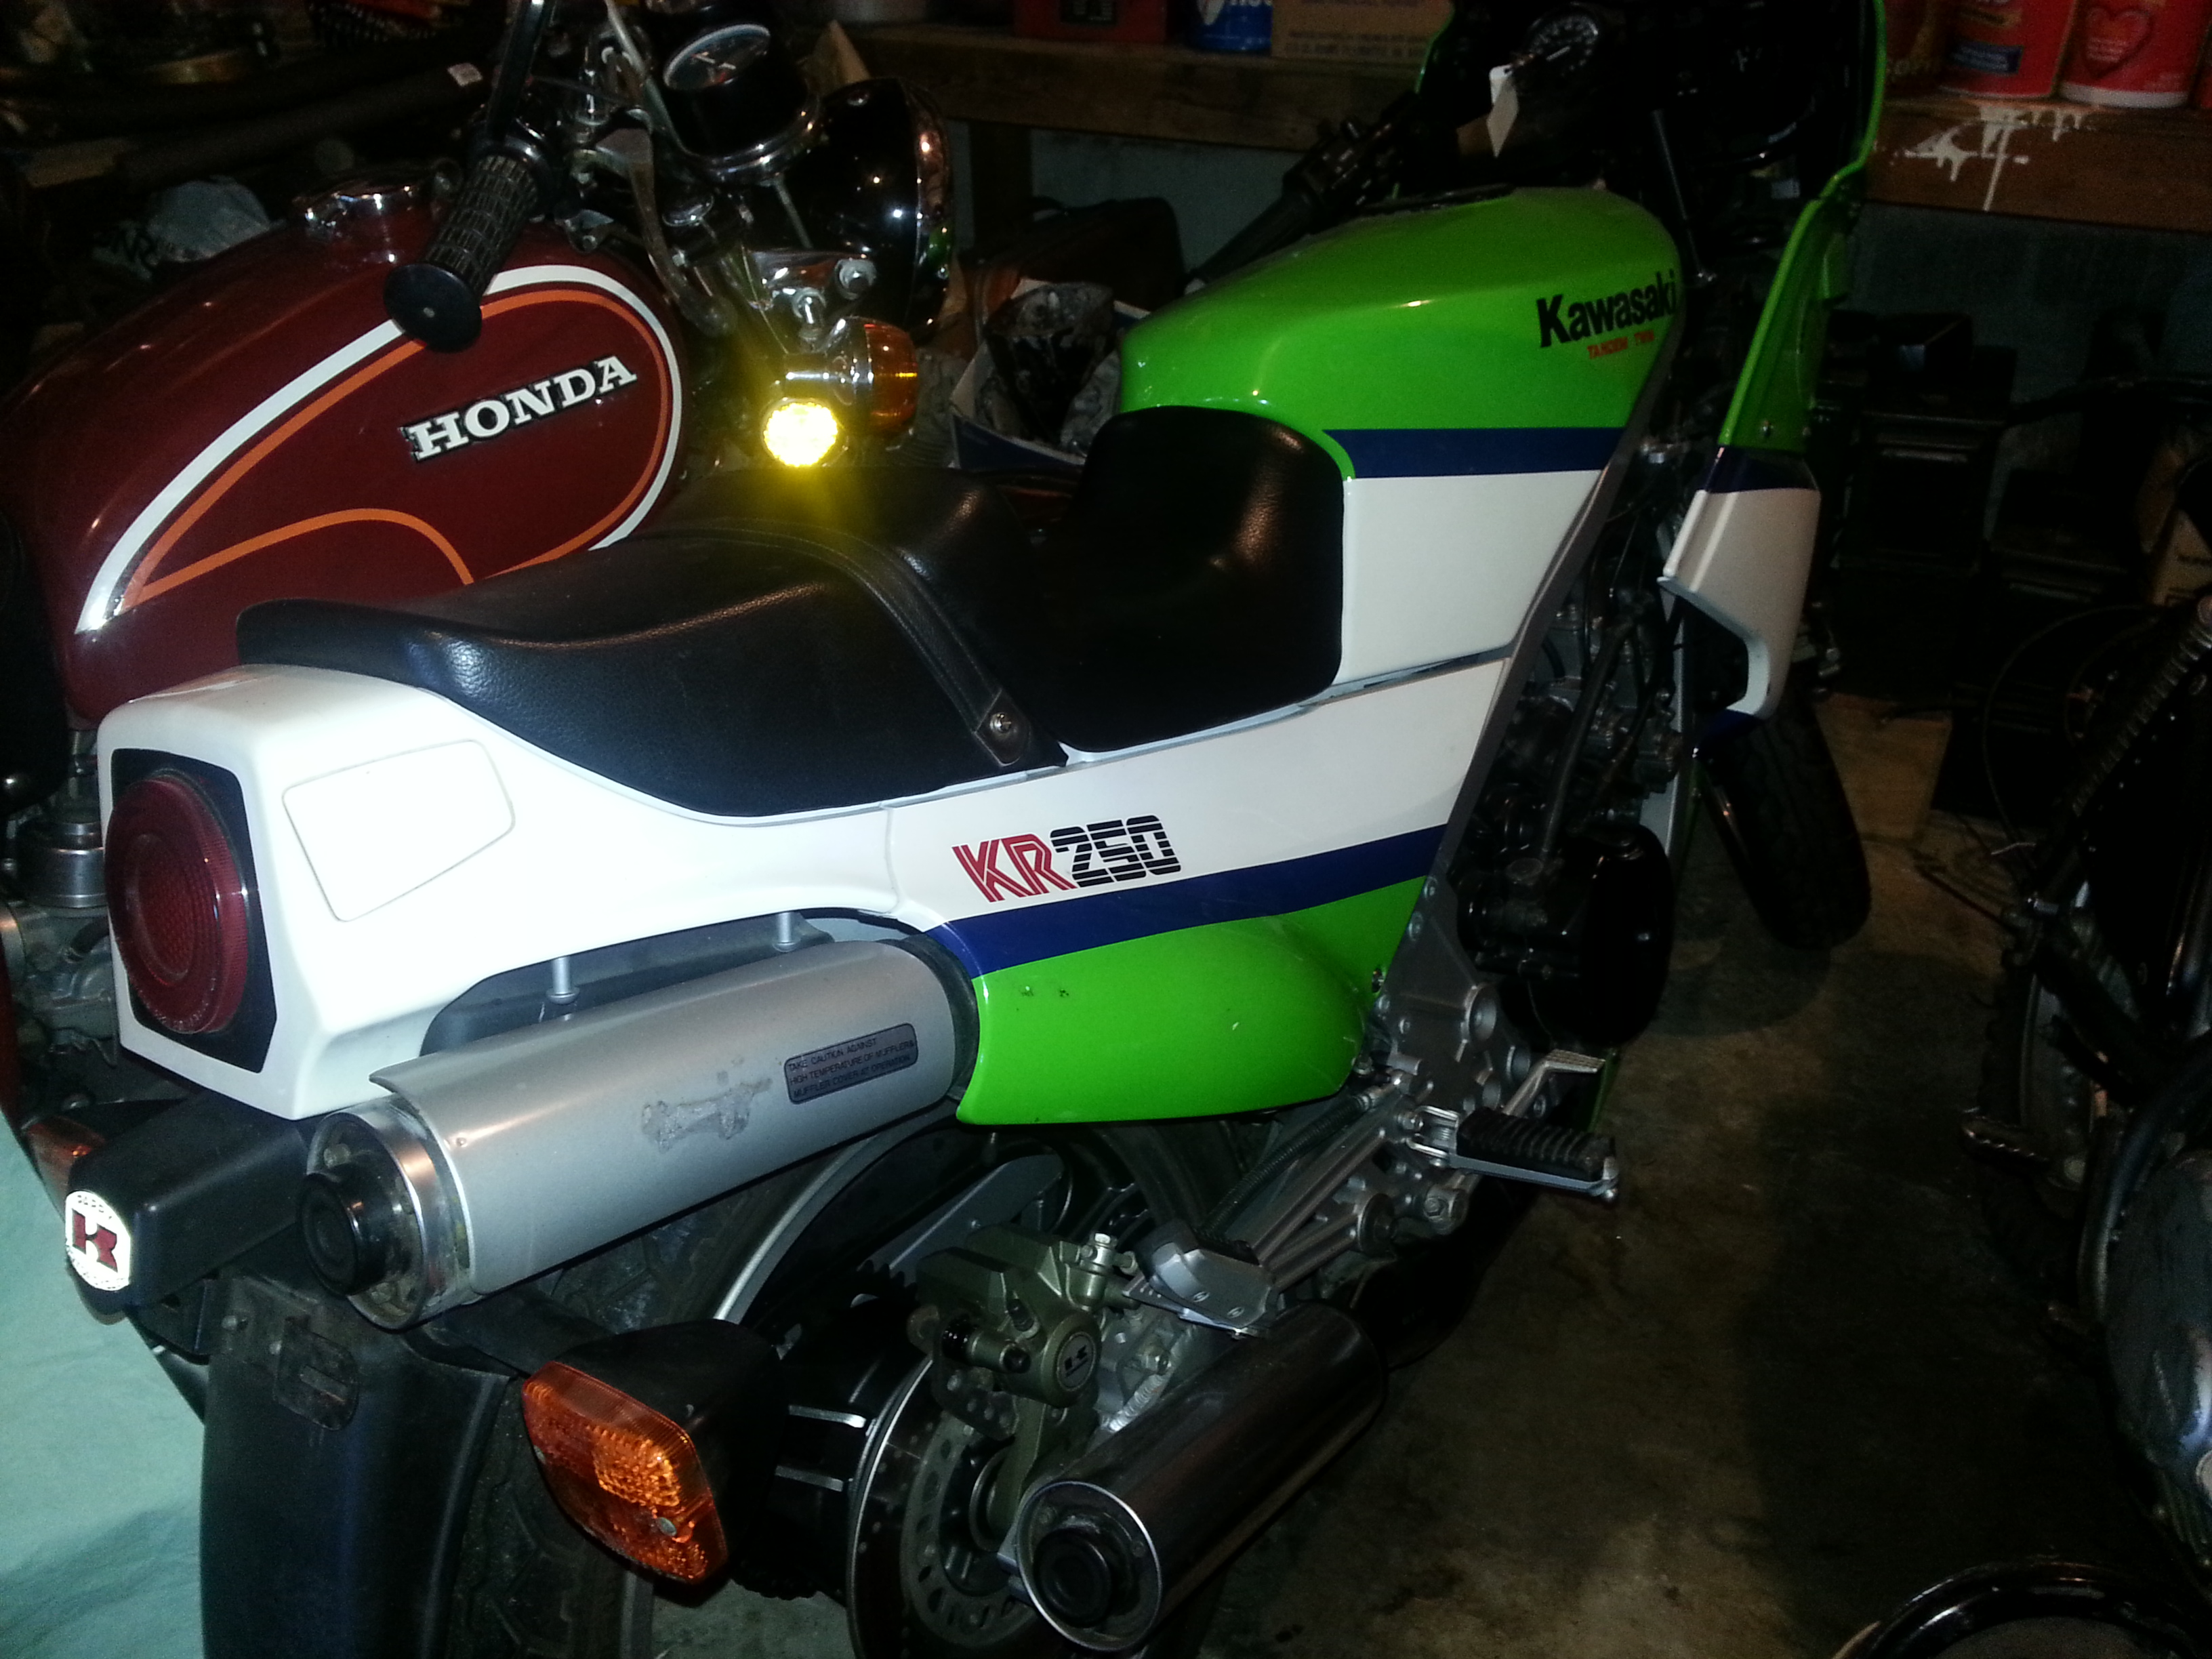 KR250 for sale in USA